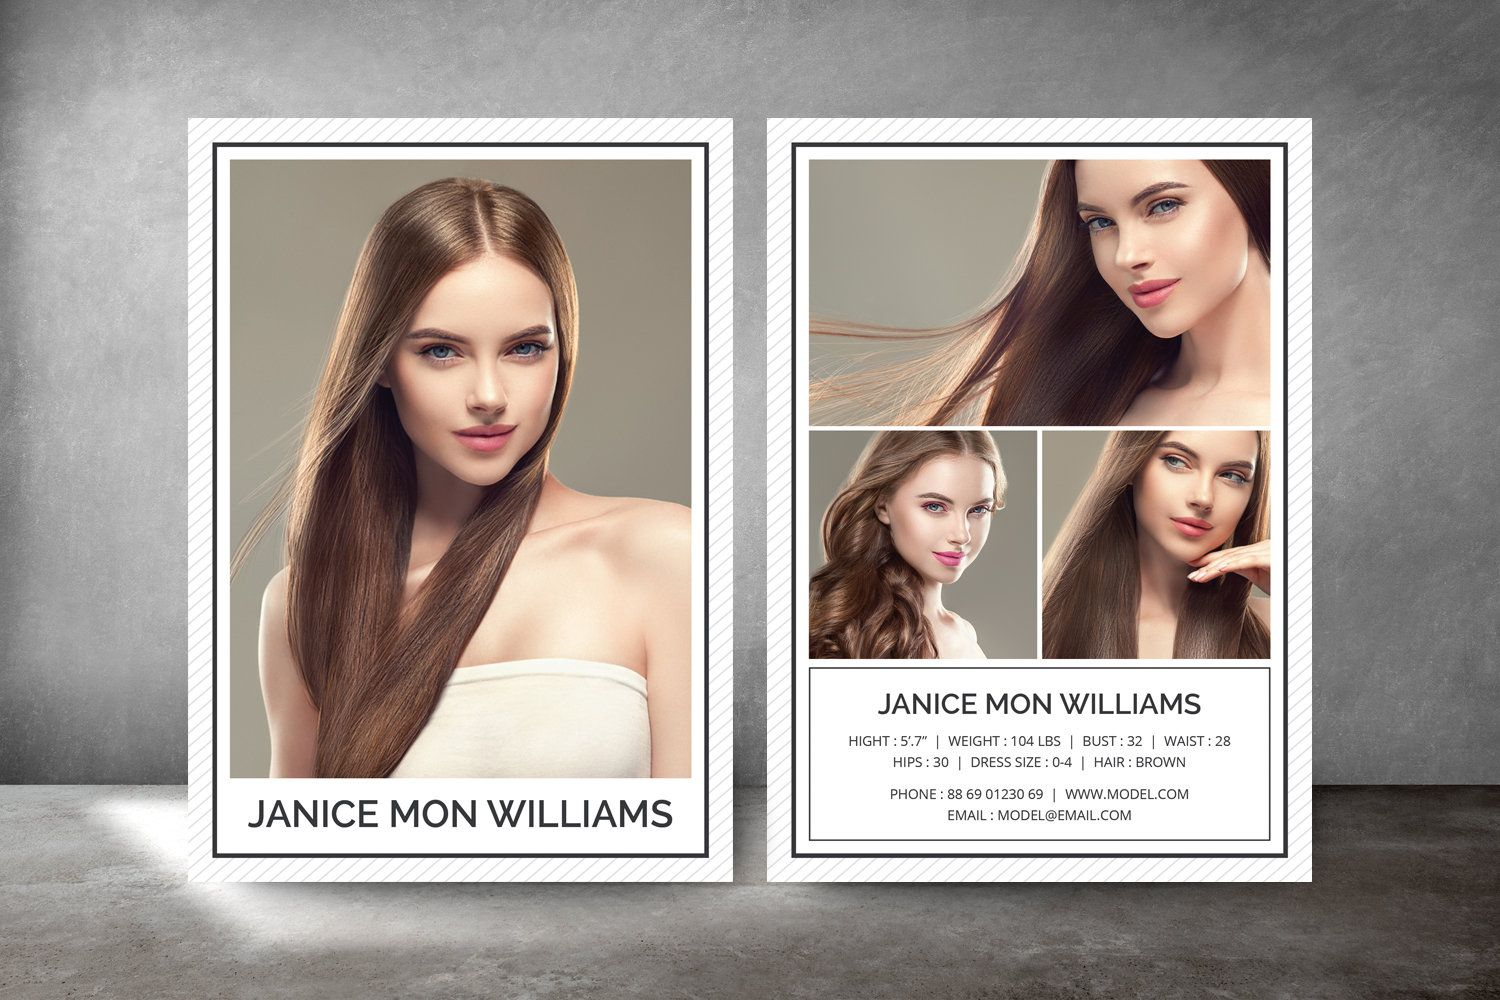 Modeling Comp Card Fashion Model Comp Card Comp Card Template Photoshop And Elements Template Model Comp Card Card Template Business Card Template Photoshop